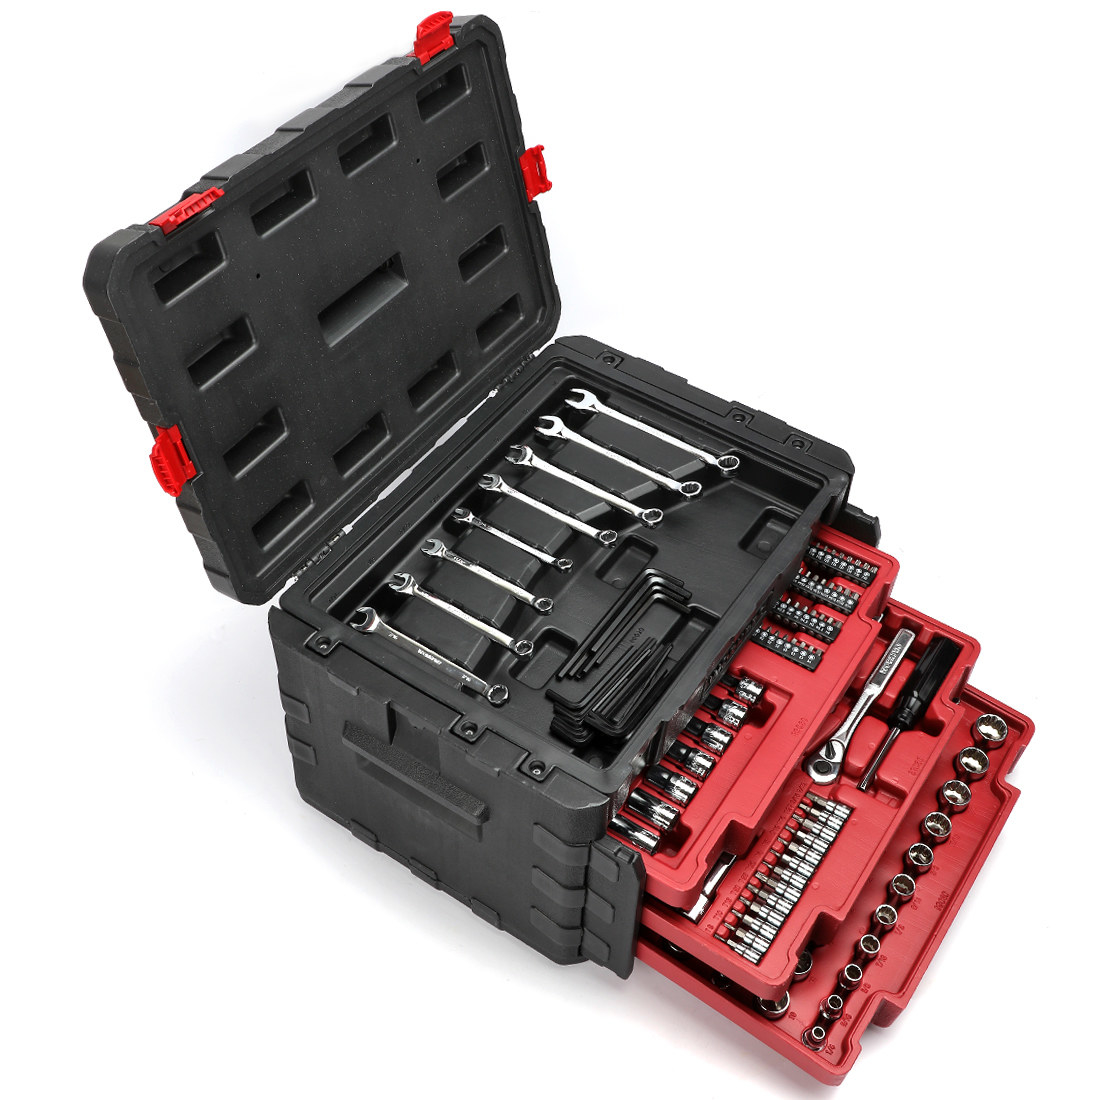 It comes with 3 ratchets, 152 sockets, 4 extensions bars, 8 wrenches, 1 magnetic handle, 12 nut drivers, 96 screwdriver bits, 40 hex keys, and more. Price: 9.99